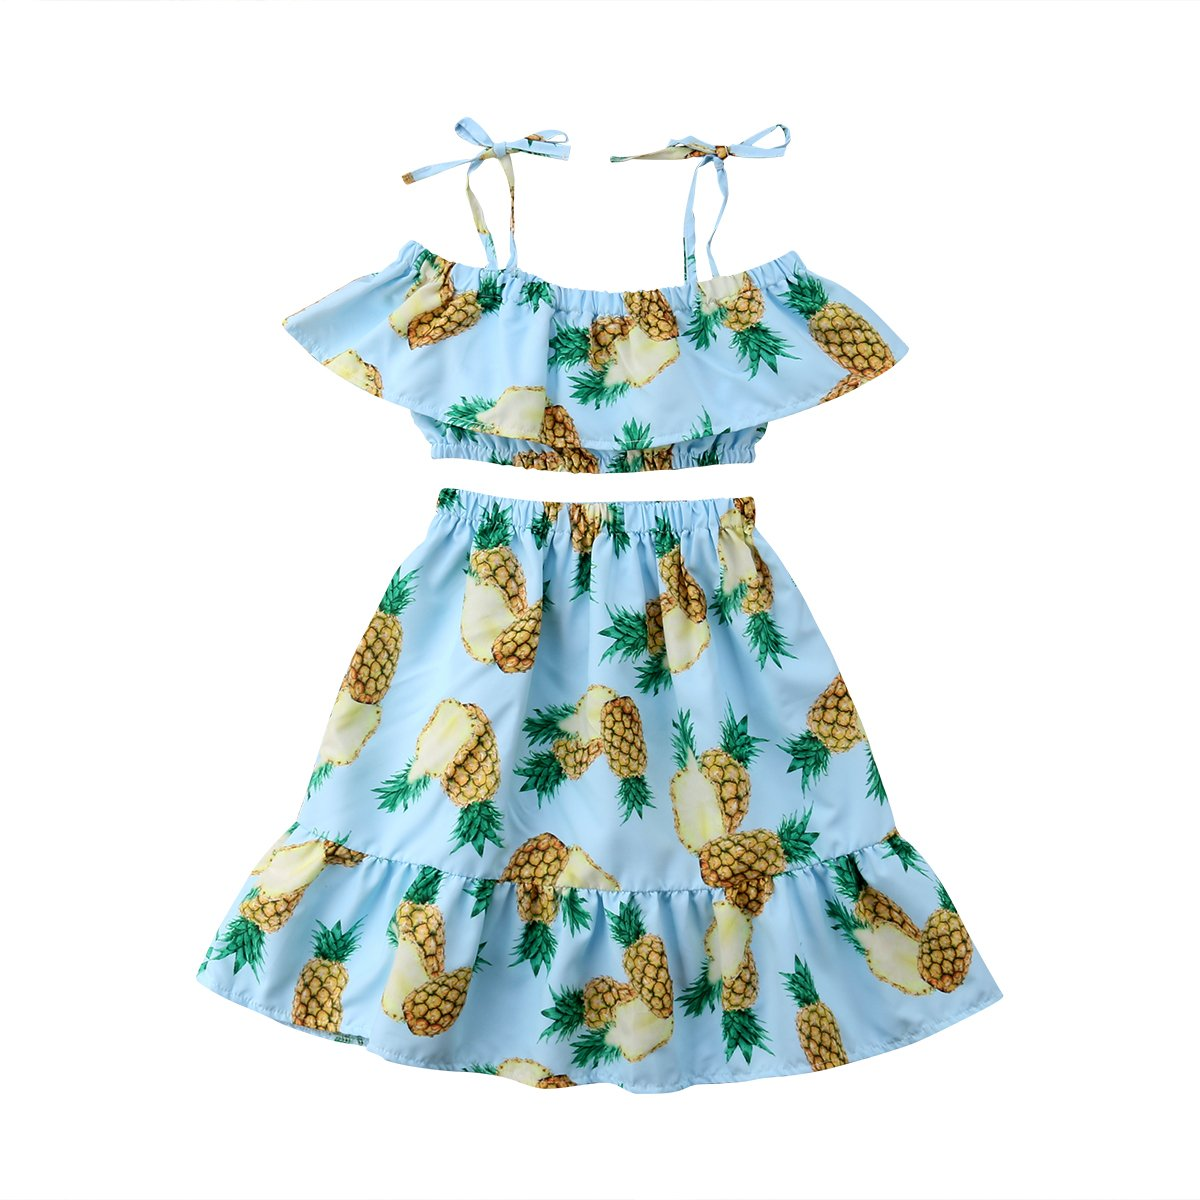 4a58f65a6f0 Amazon.com  Toddler Kids Baby Girl Off-Shoulder Tops +Flowers Long Skirts 2pcs  Outfits Summer Clothes (Blue Pineapple